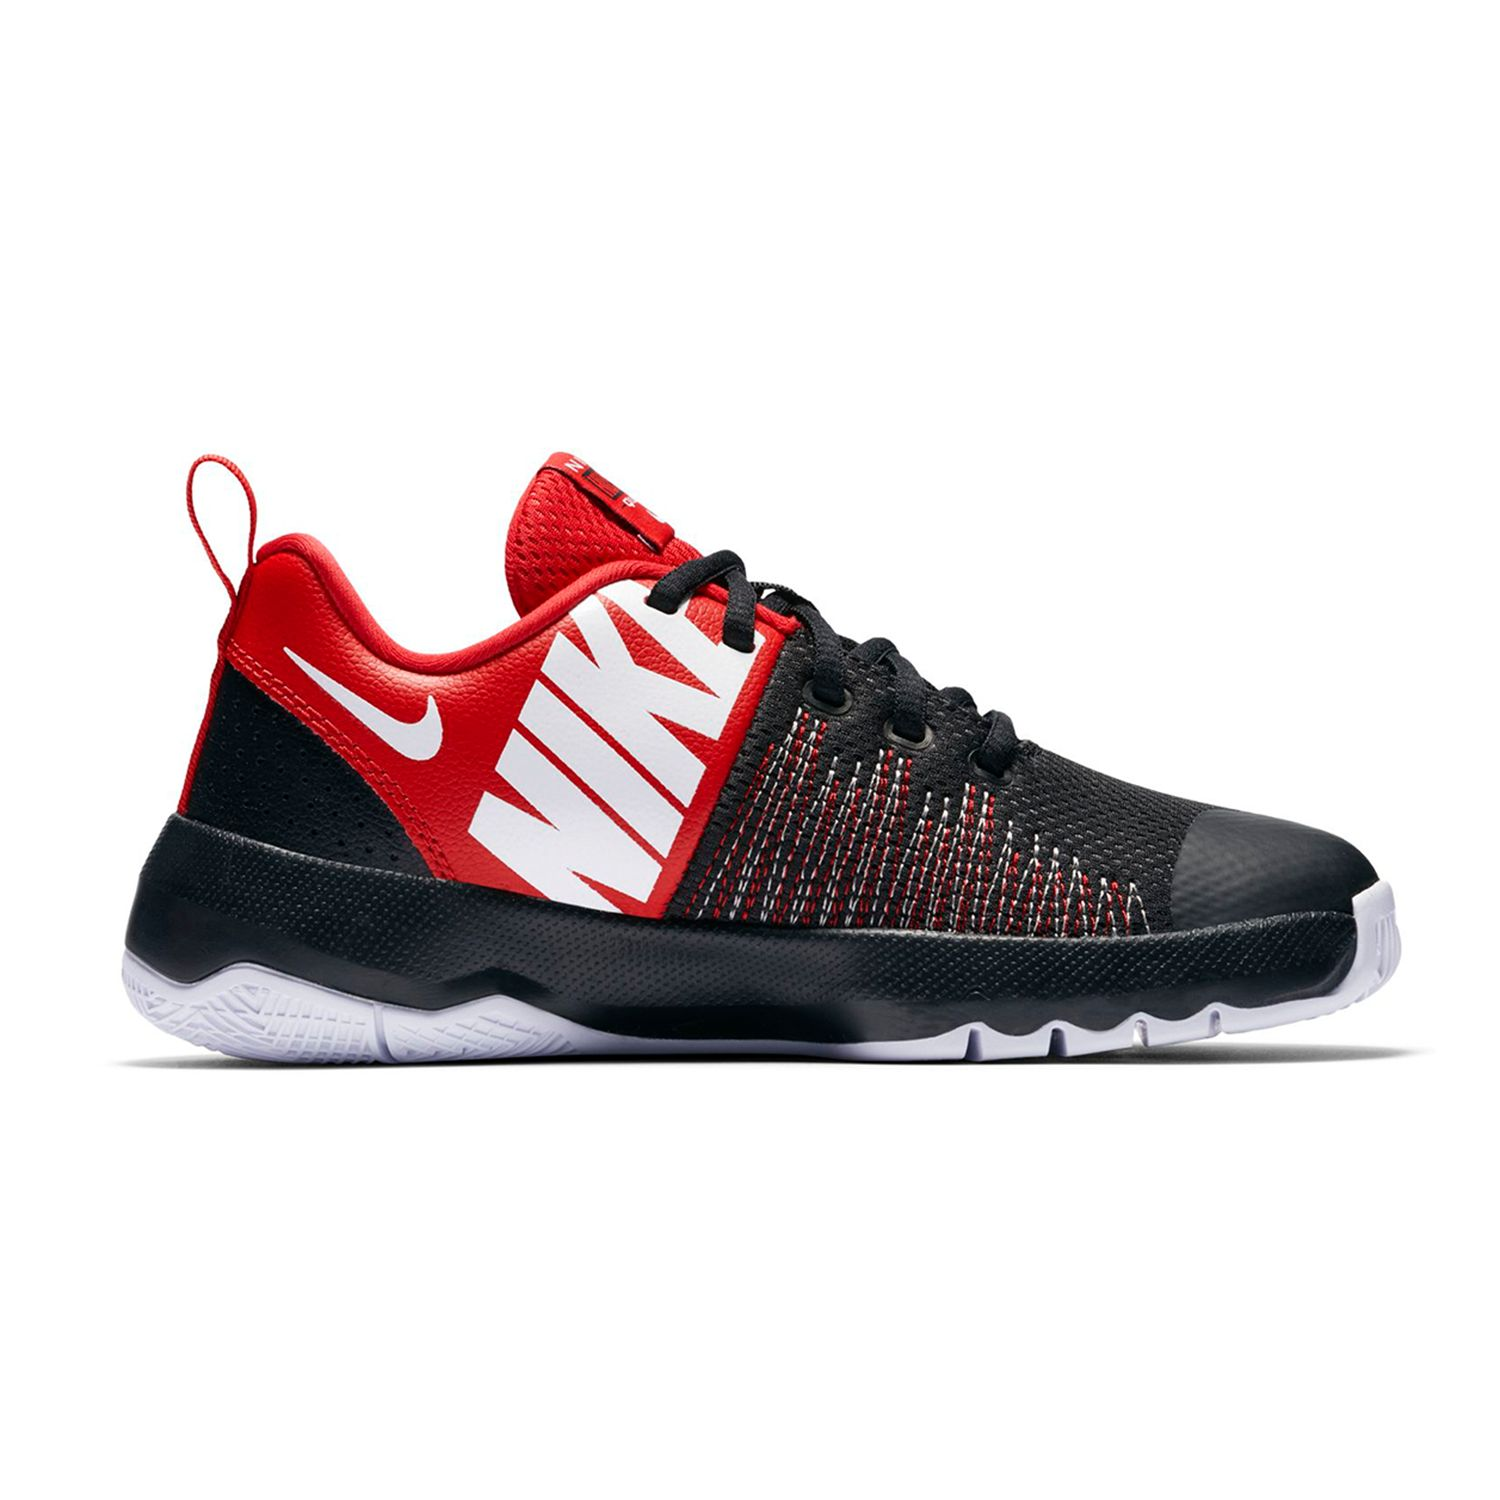 nike shoes 10 5 boys charged in throwing stars 952409